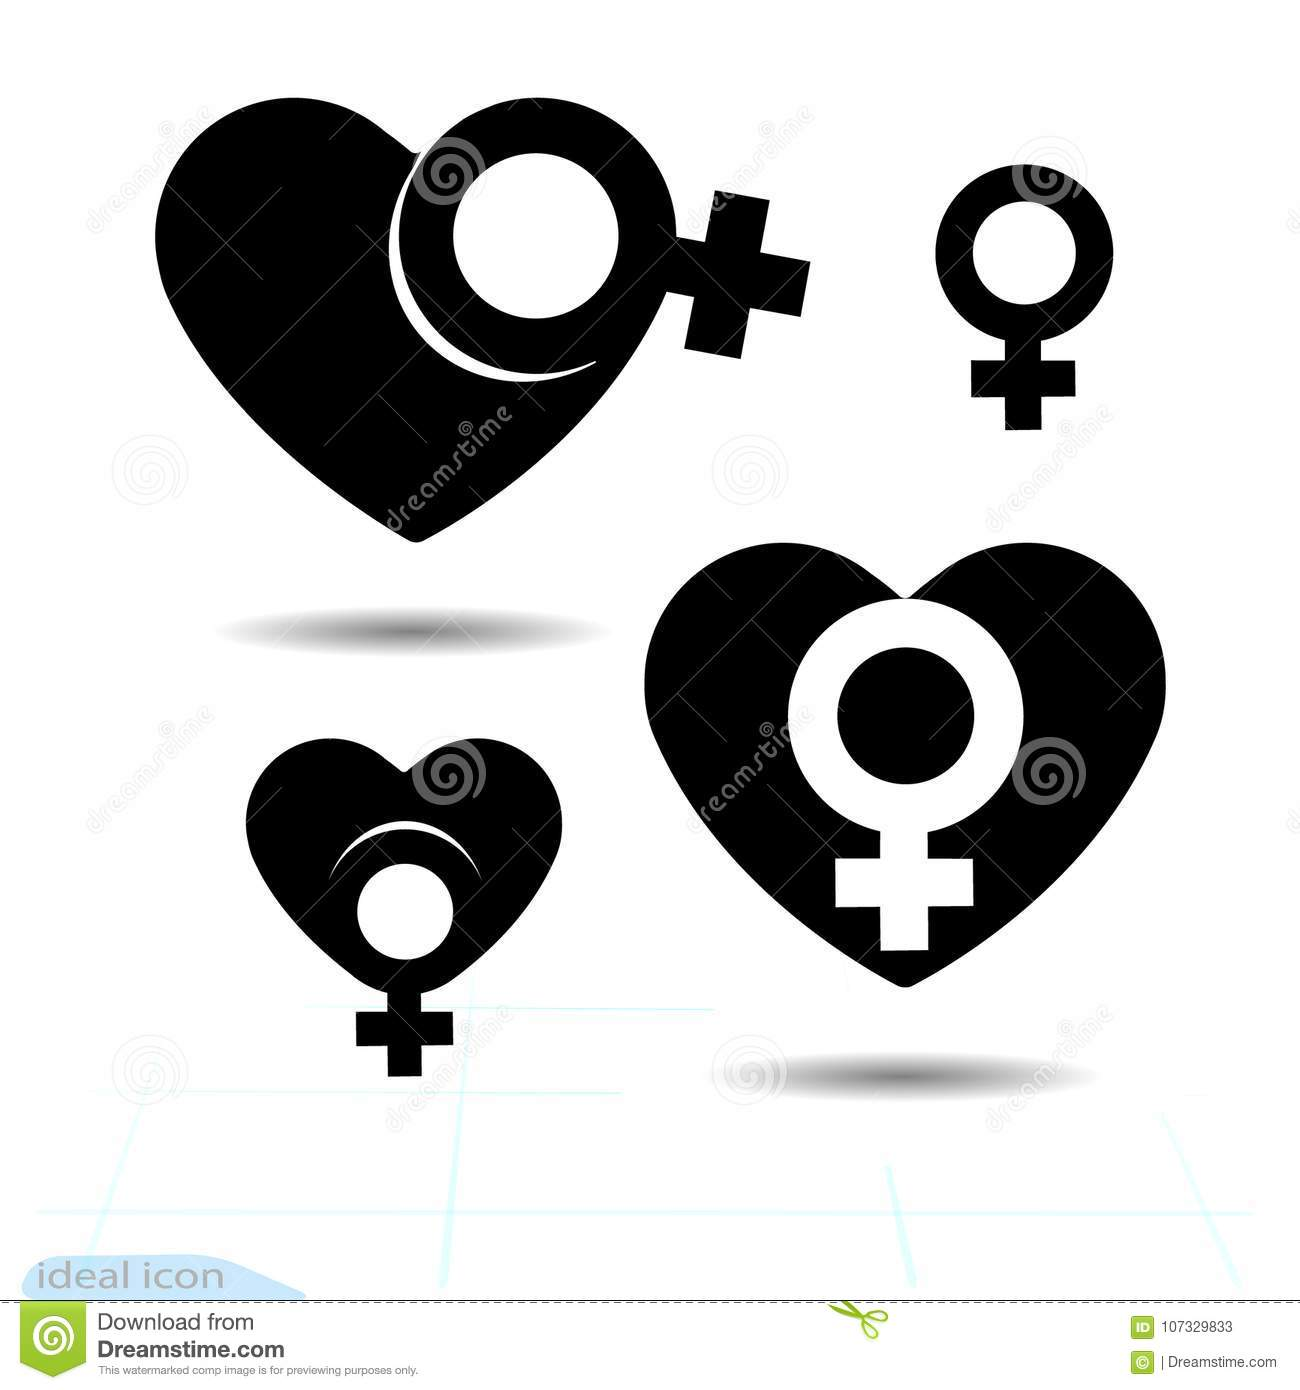 The signs gender icon of the heart. A symbol of love. Valentine s Day. Flat style for graphic design, logo. Black as coal. A lot o